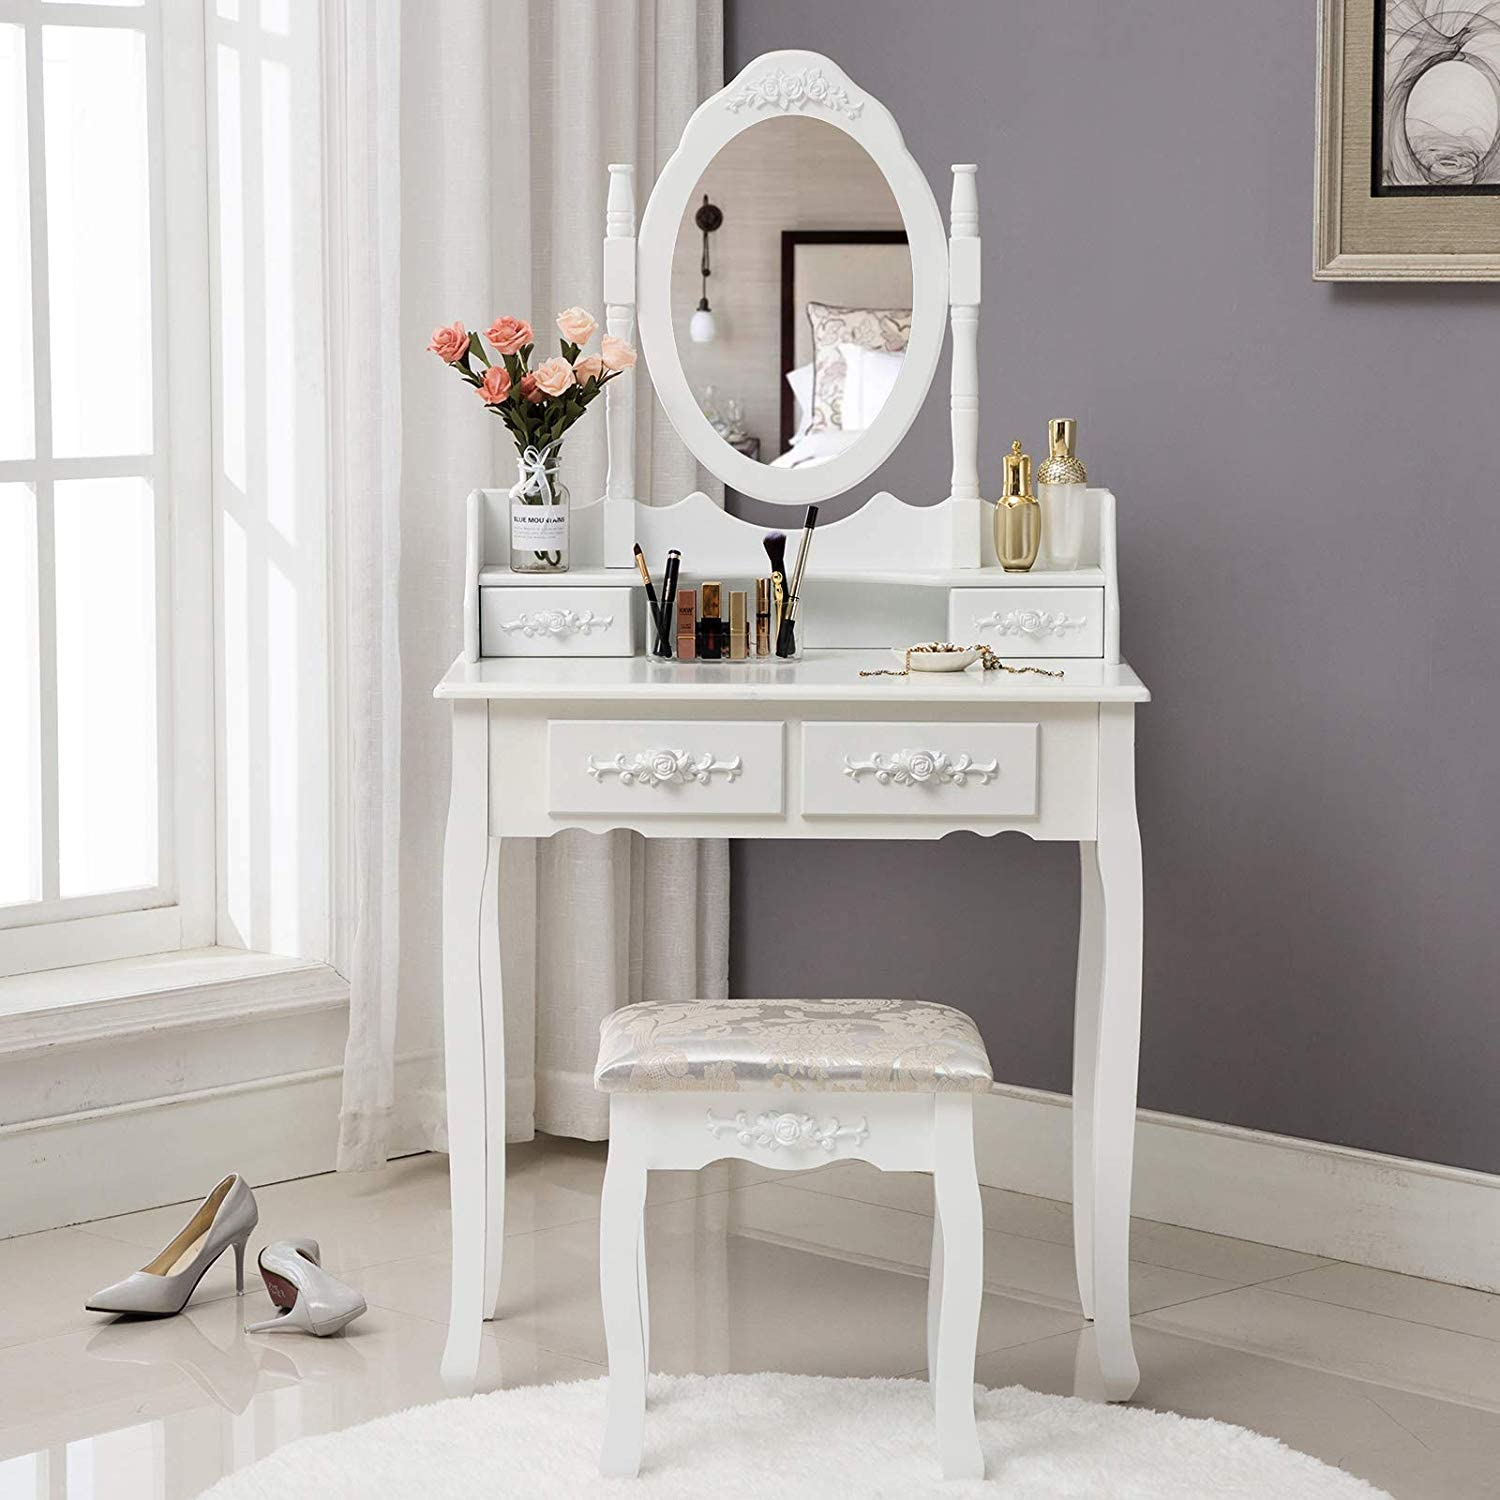 Unihome Makeup Table – Vanity Table with Mirror Small Dressing Table Bedroom White Vanity Makeup Table with 4 Drawers